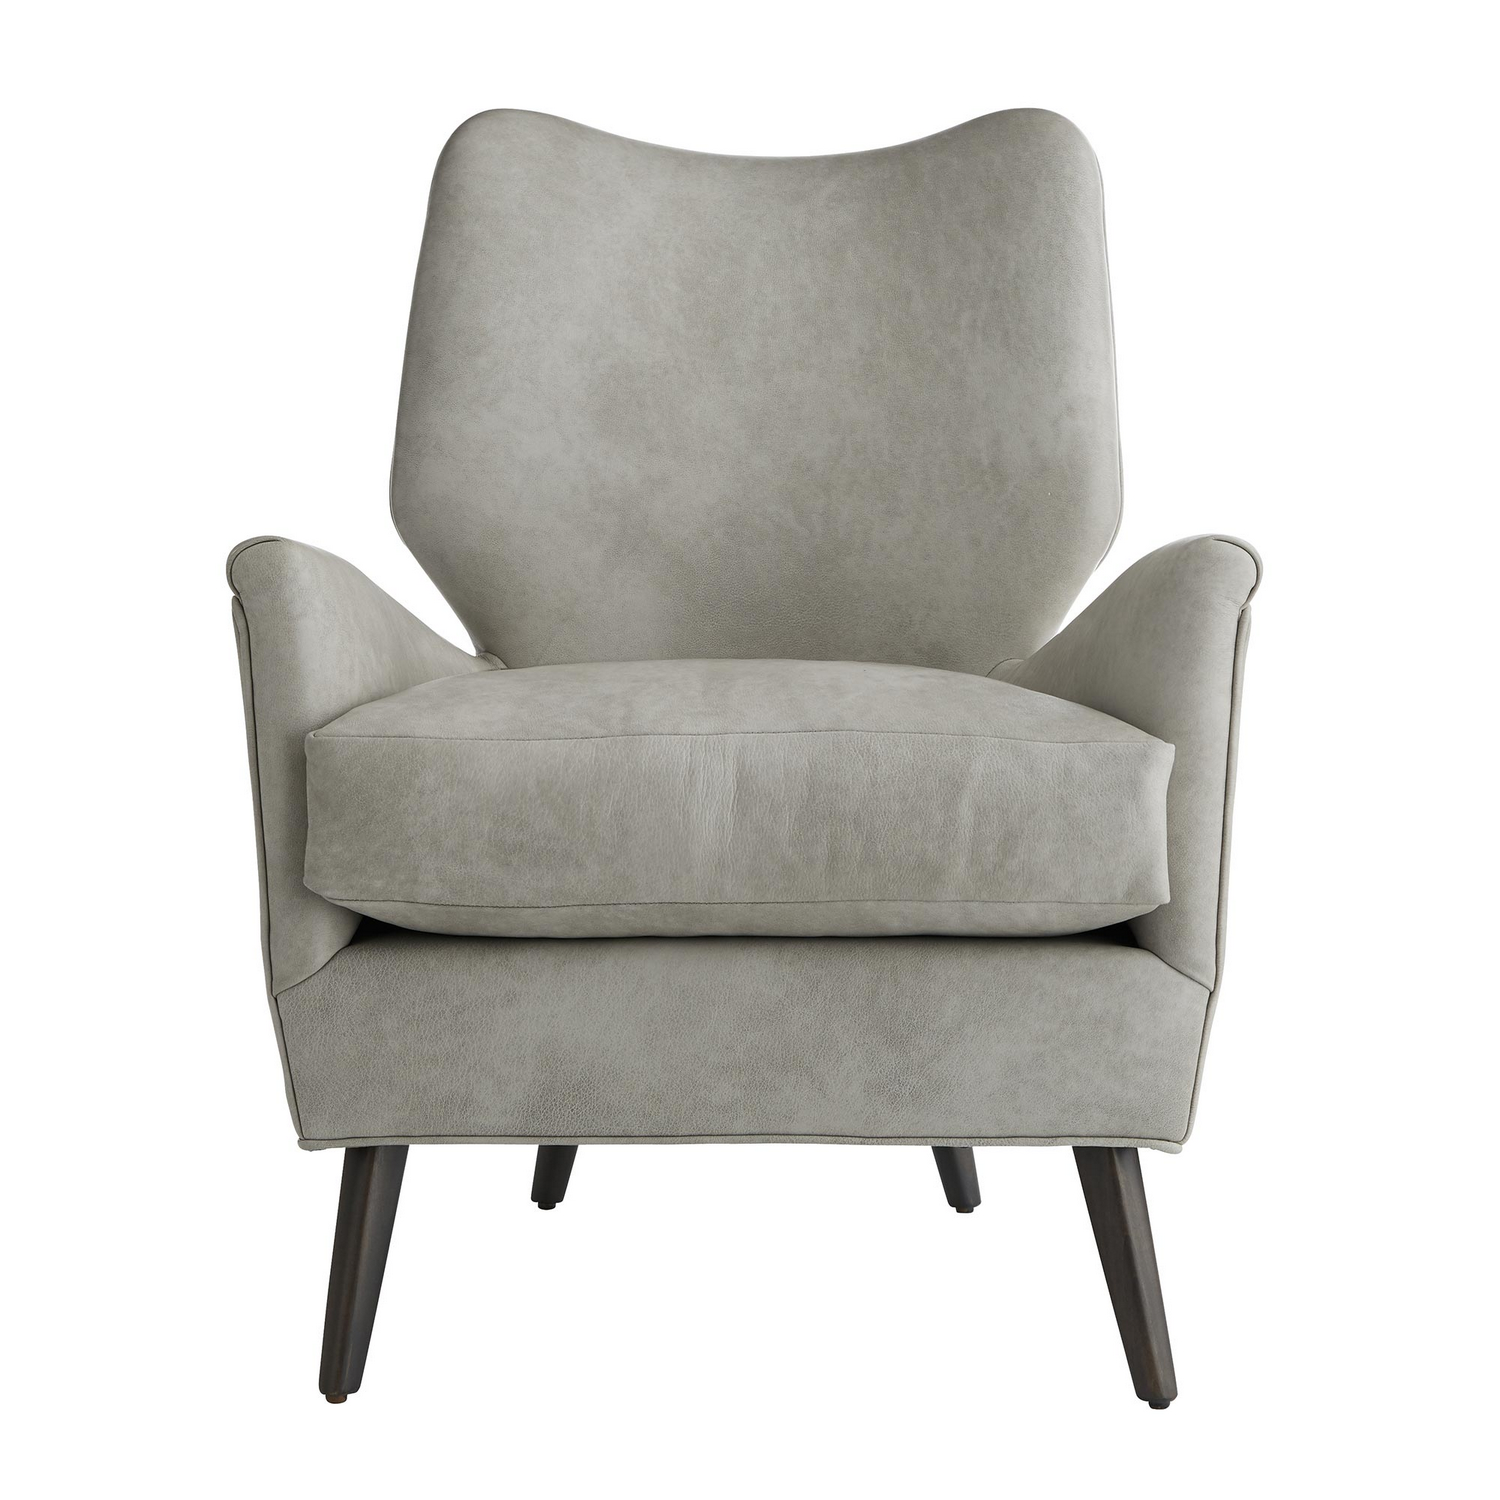 Chair by Arteriors 8019